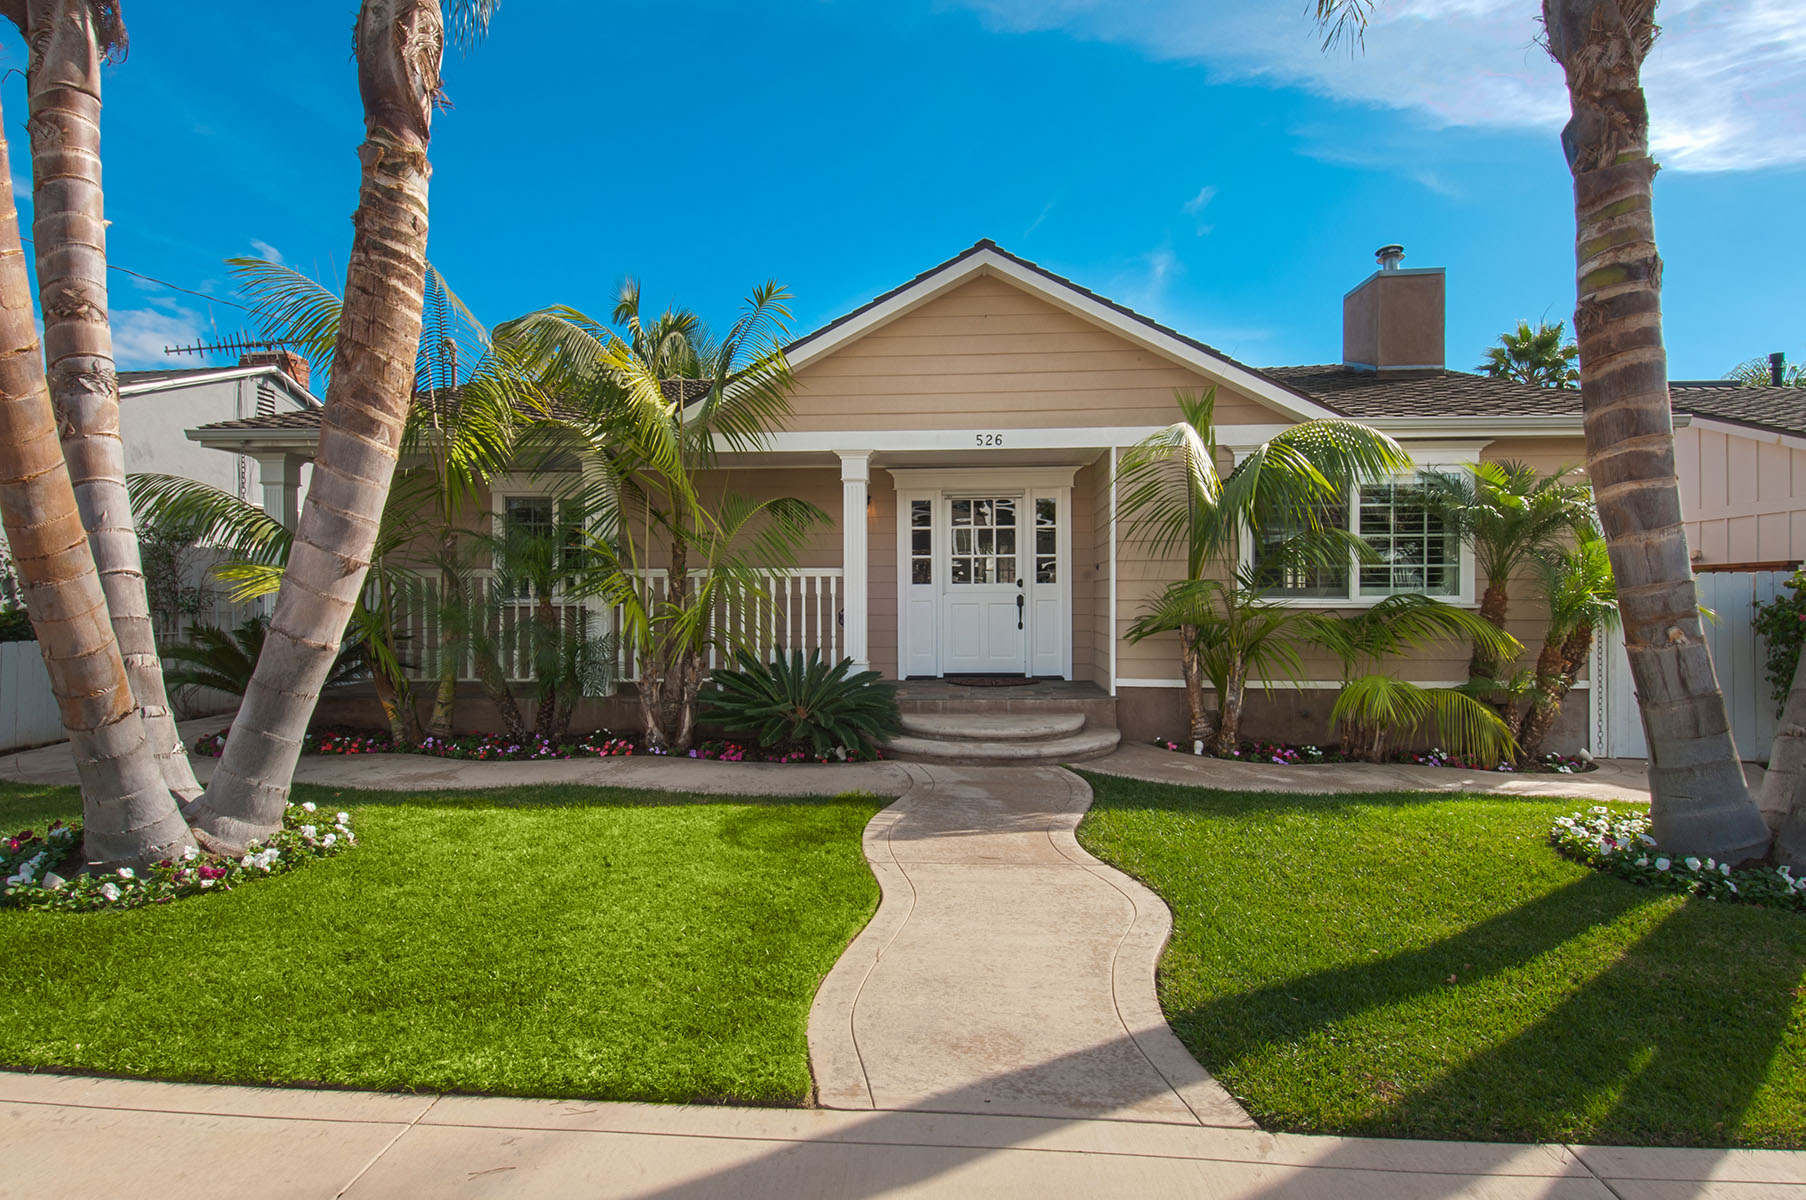 Single Family Home for Sale at 526 Westminster Ave Newport Beach, California 92663 United States